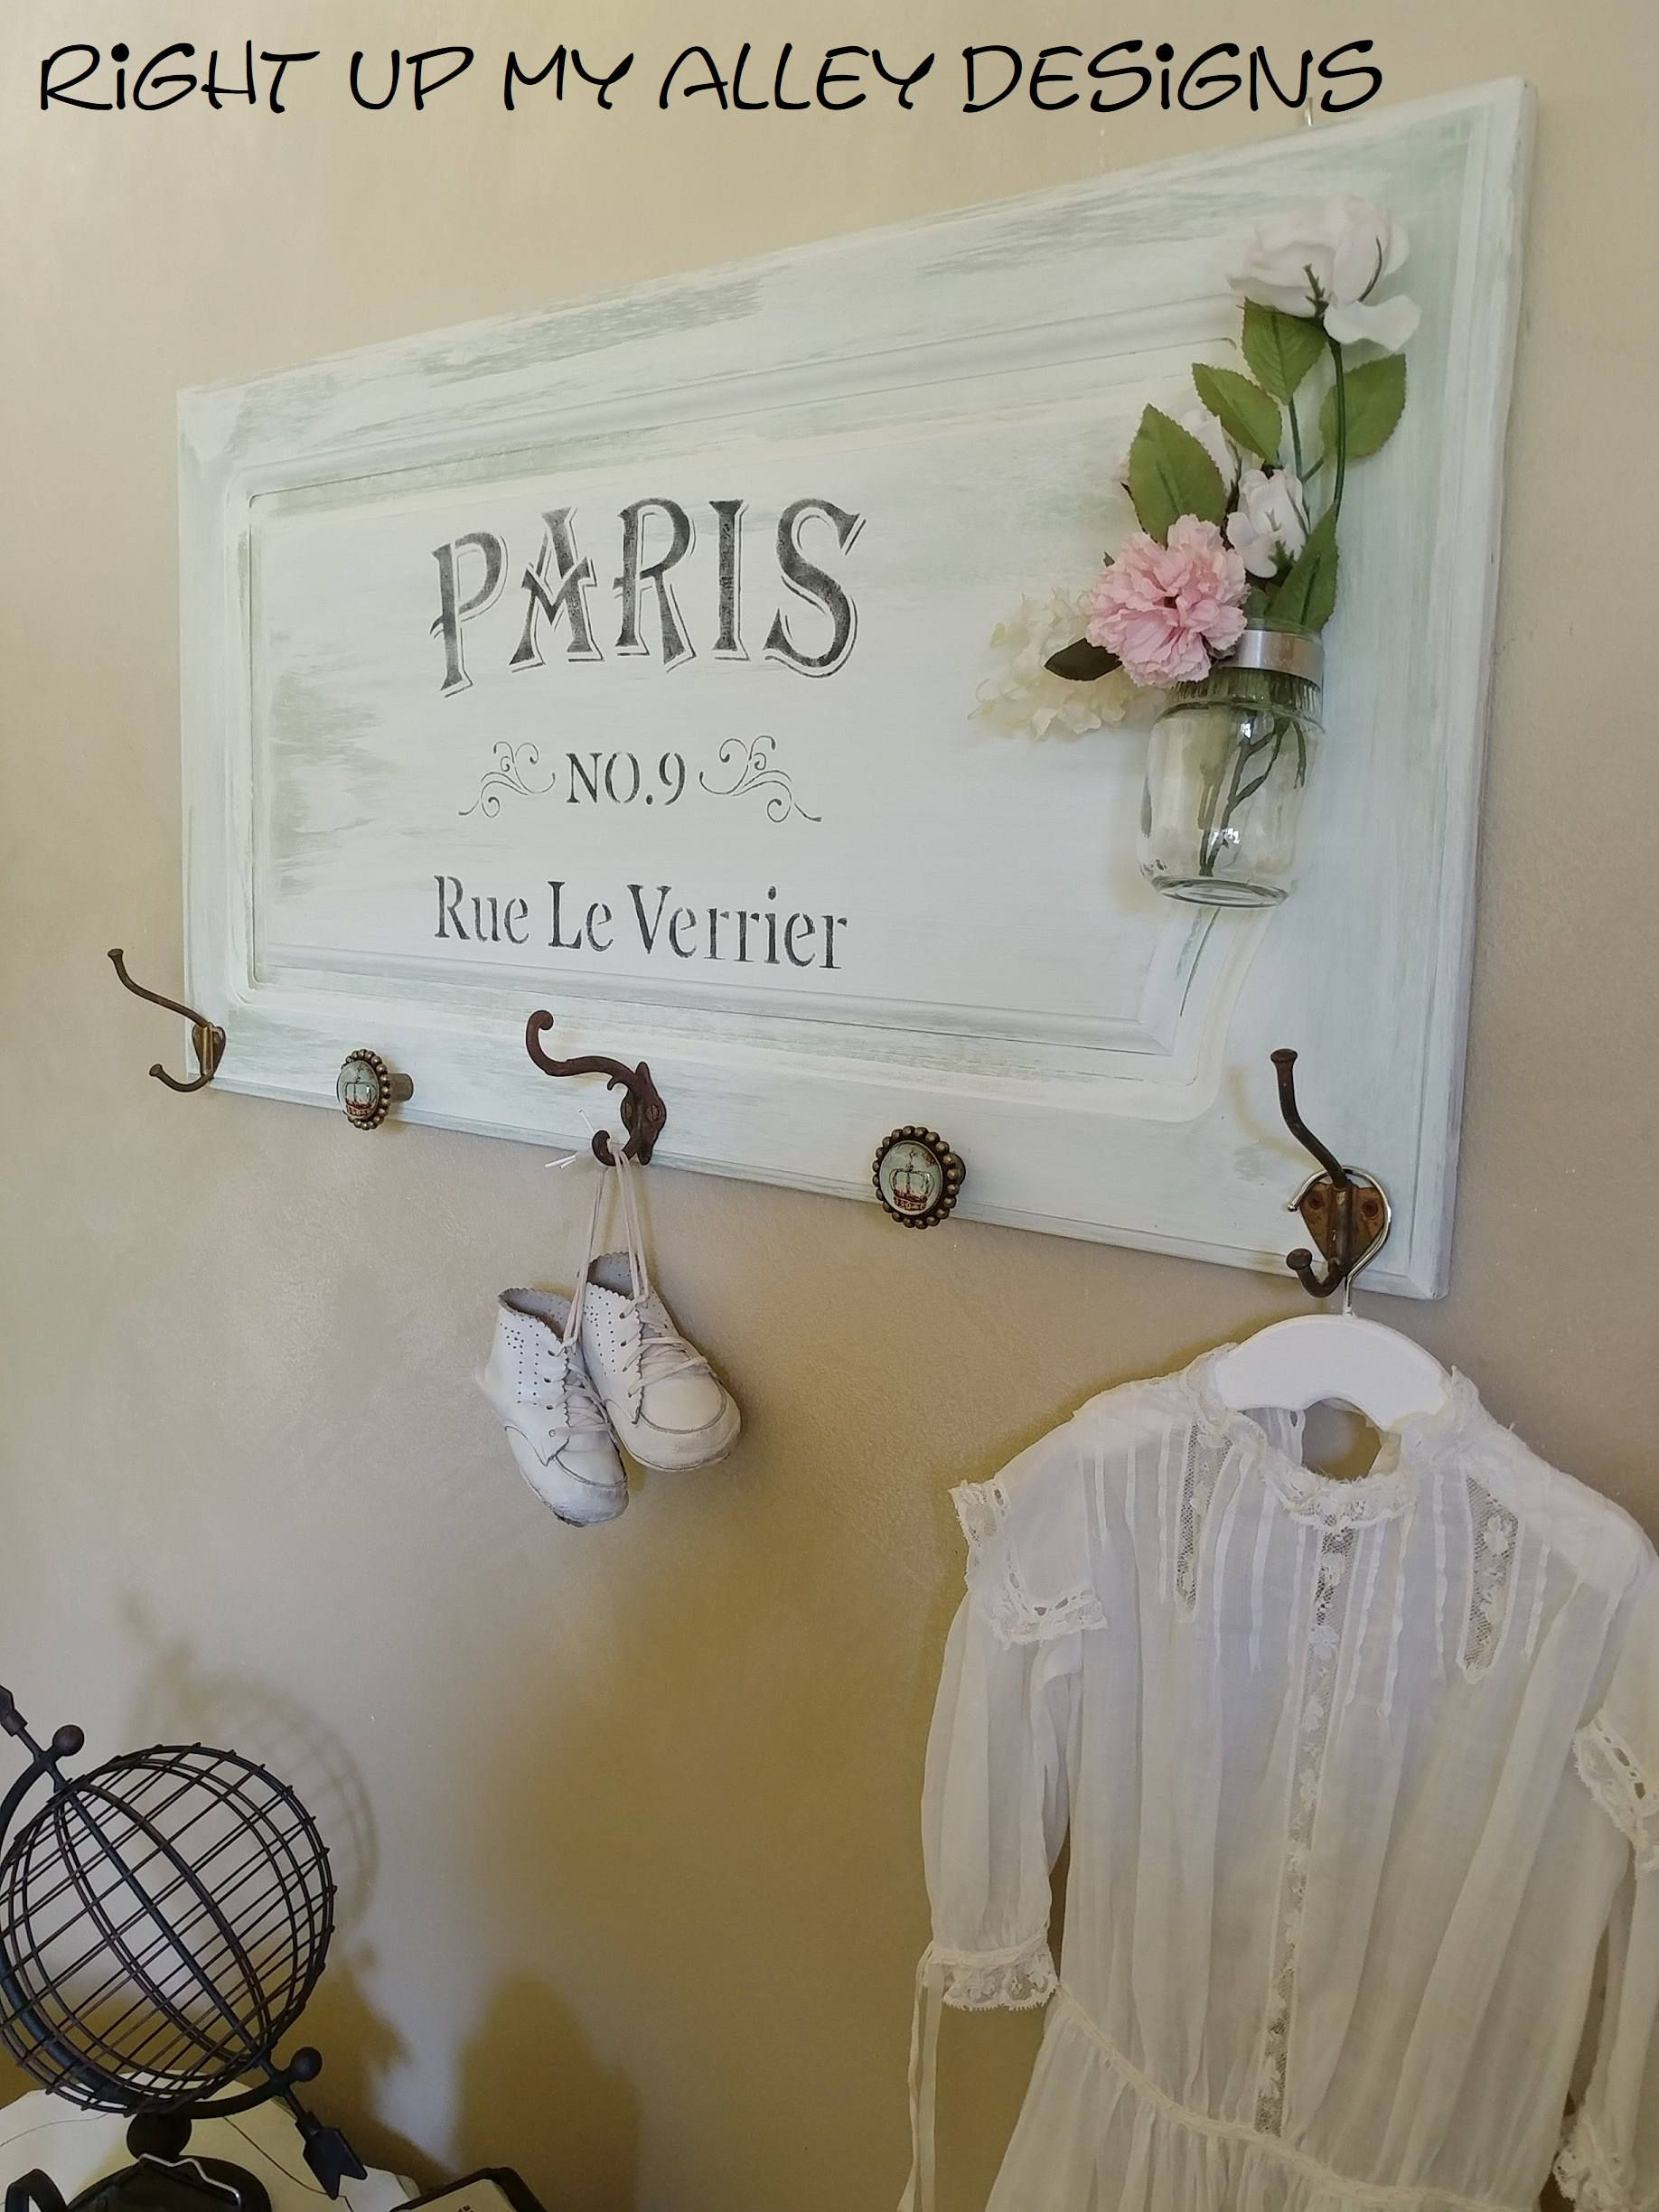 Paris Plaque Wall Decor Coat Hook Wall Hanging By Rightupmyalleydesign On Etsy Wall Decor Bedroom Wall Hanging Wall Decor